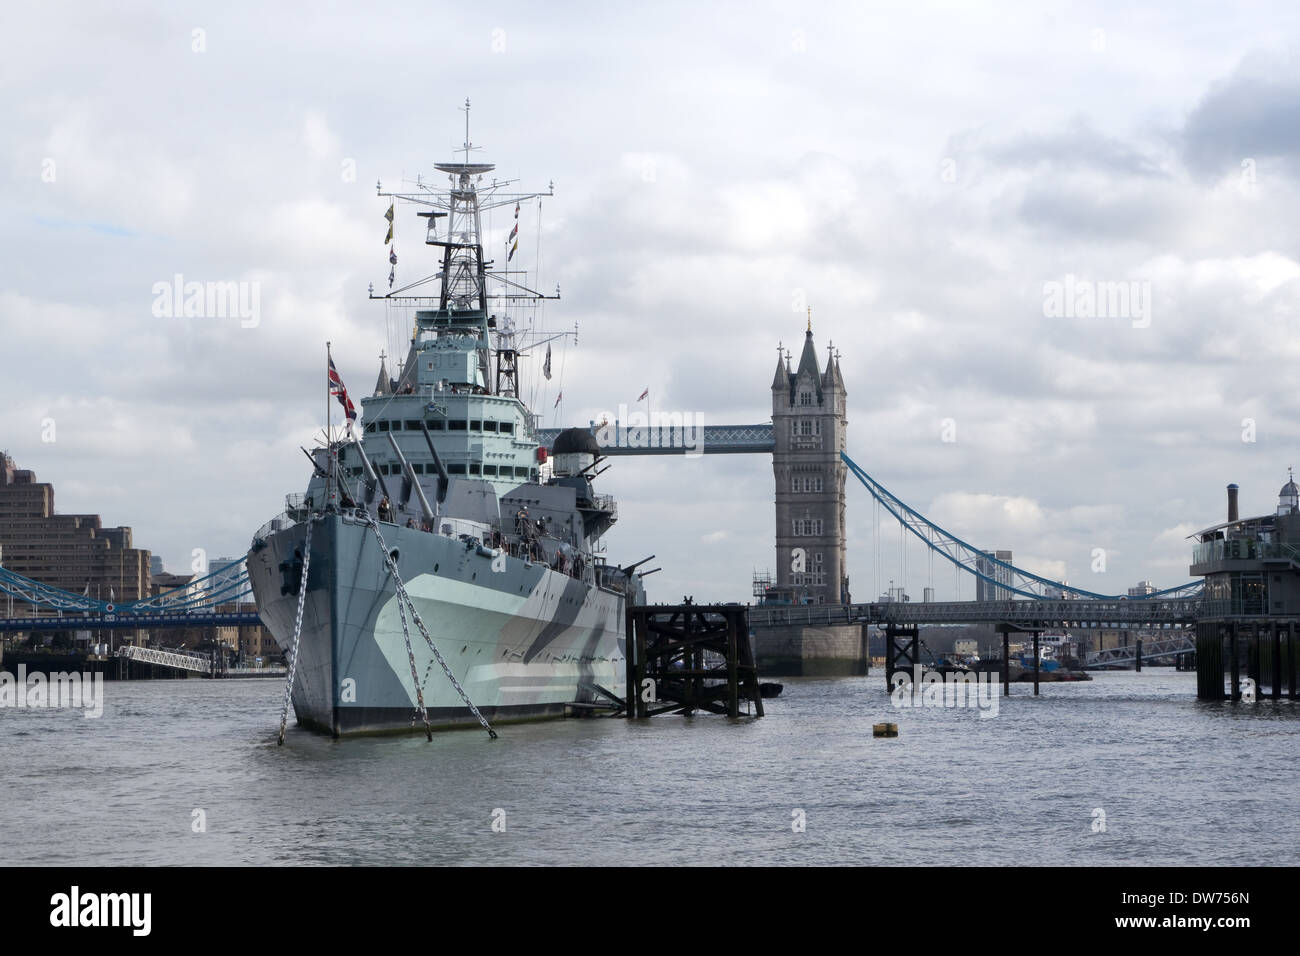 HMS Belfast Moored in The Pool of London -1 - Stock Image